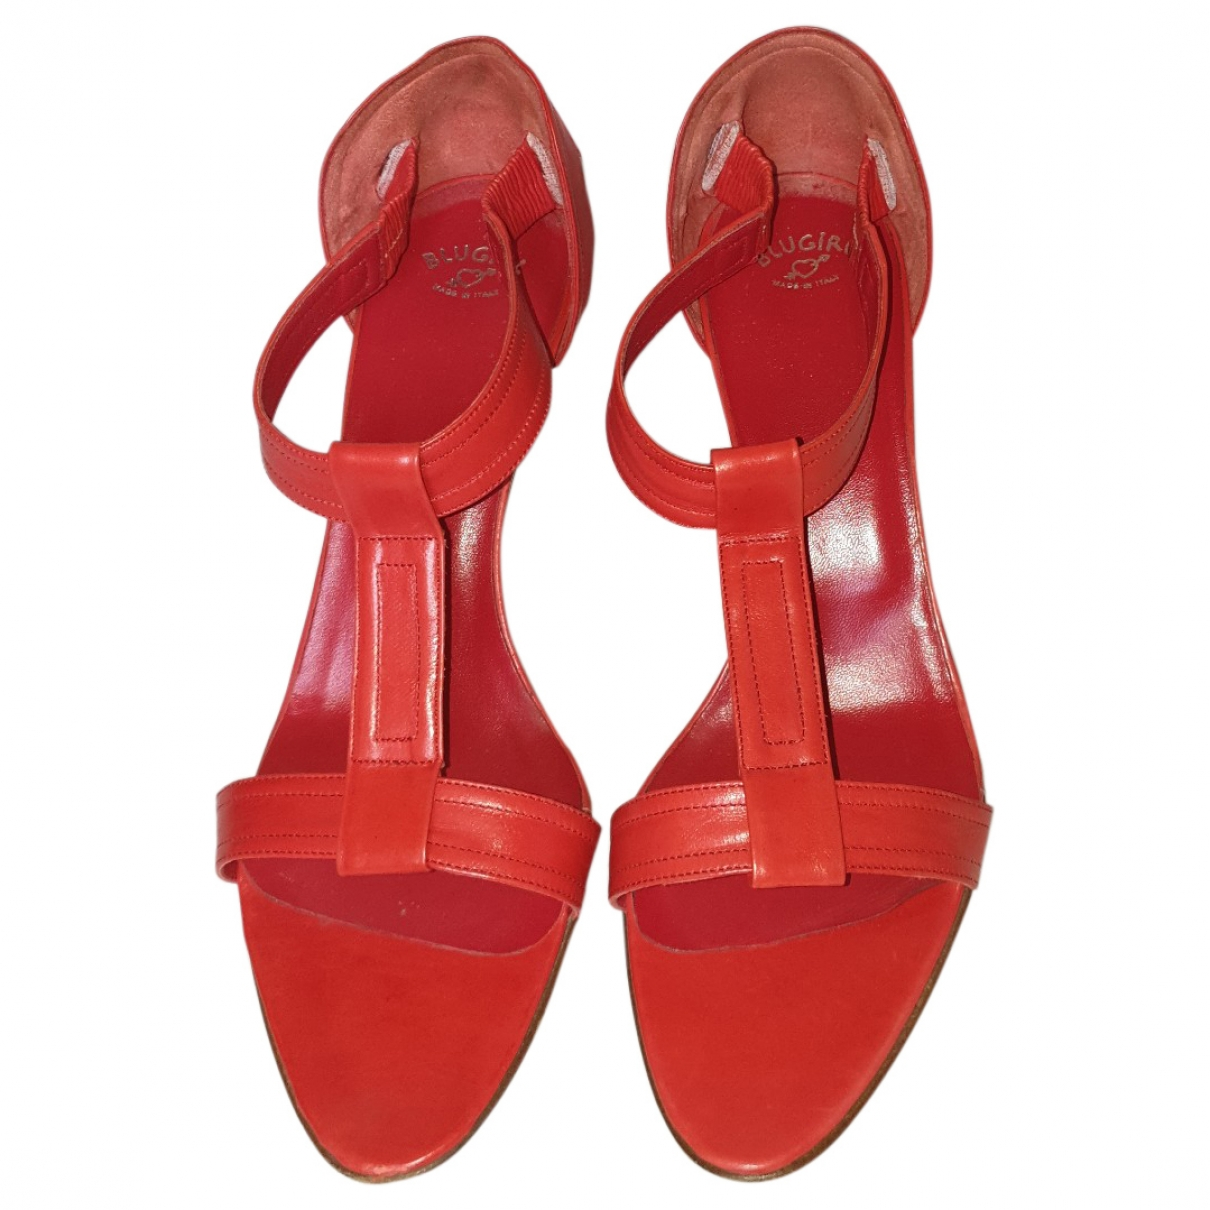 Blumarine \N Red Leather Sandals for Women 37 EU